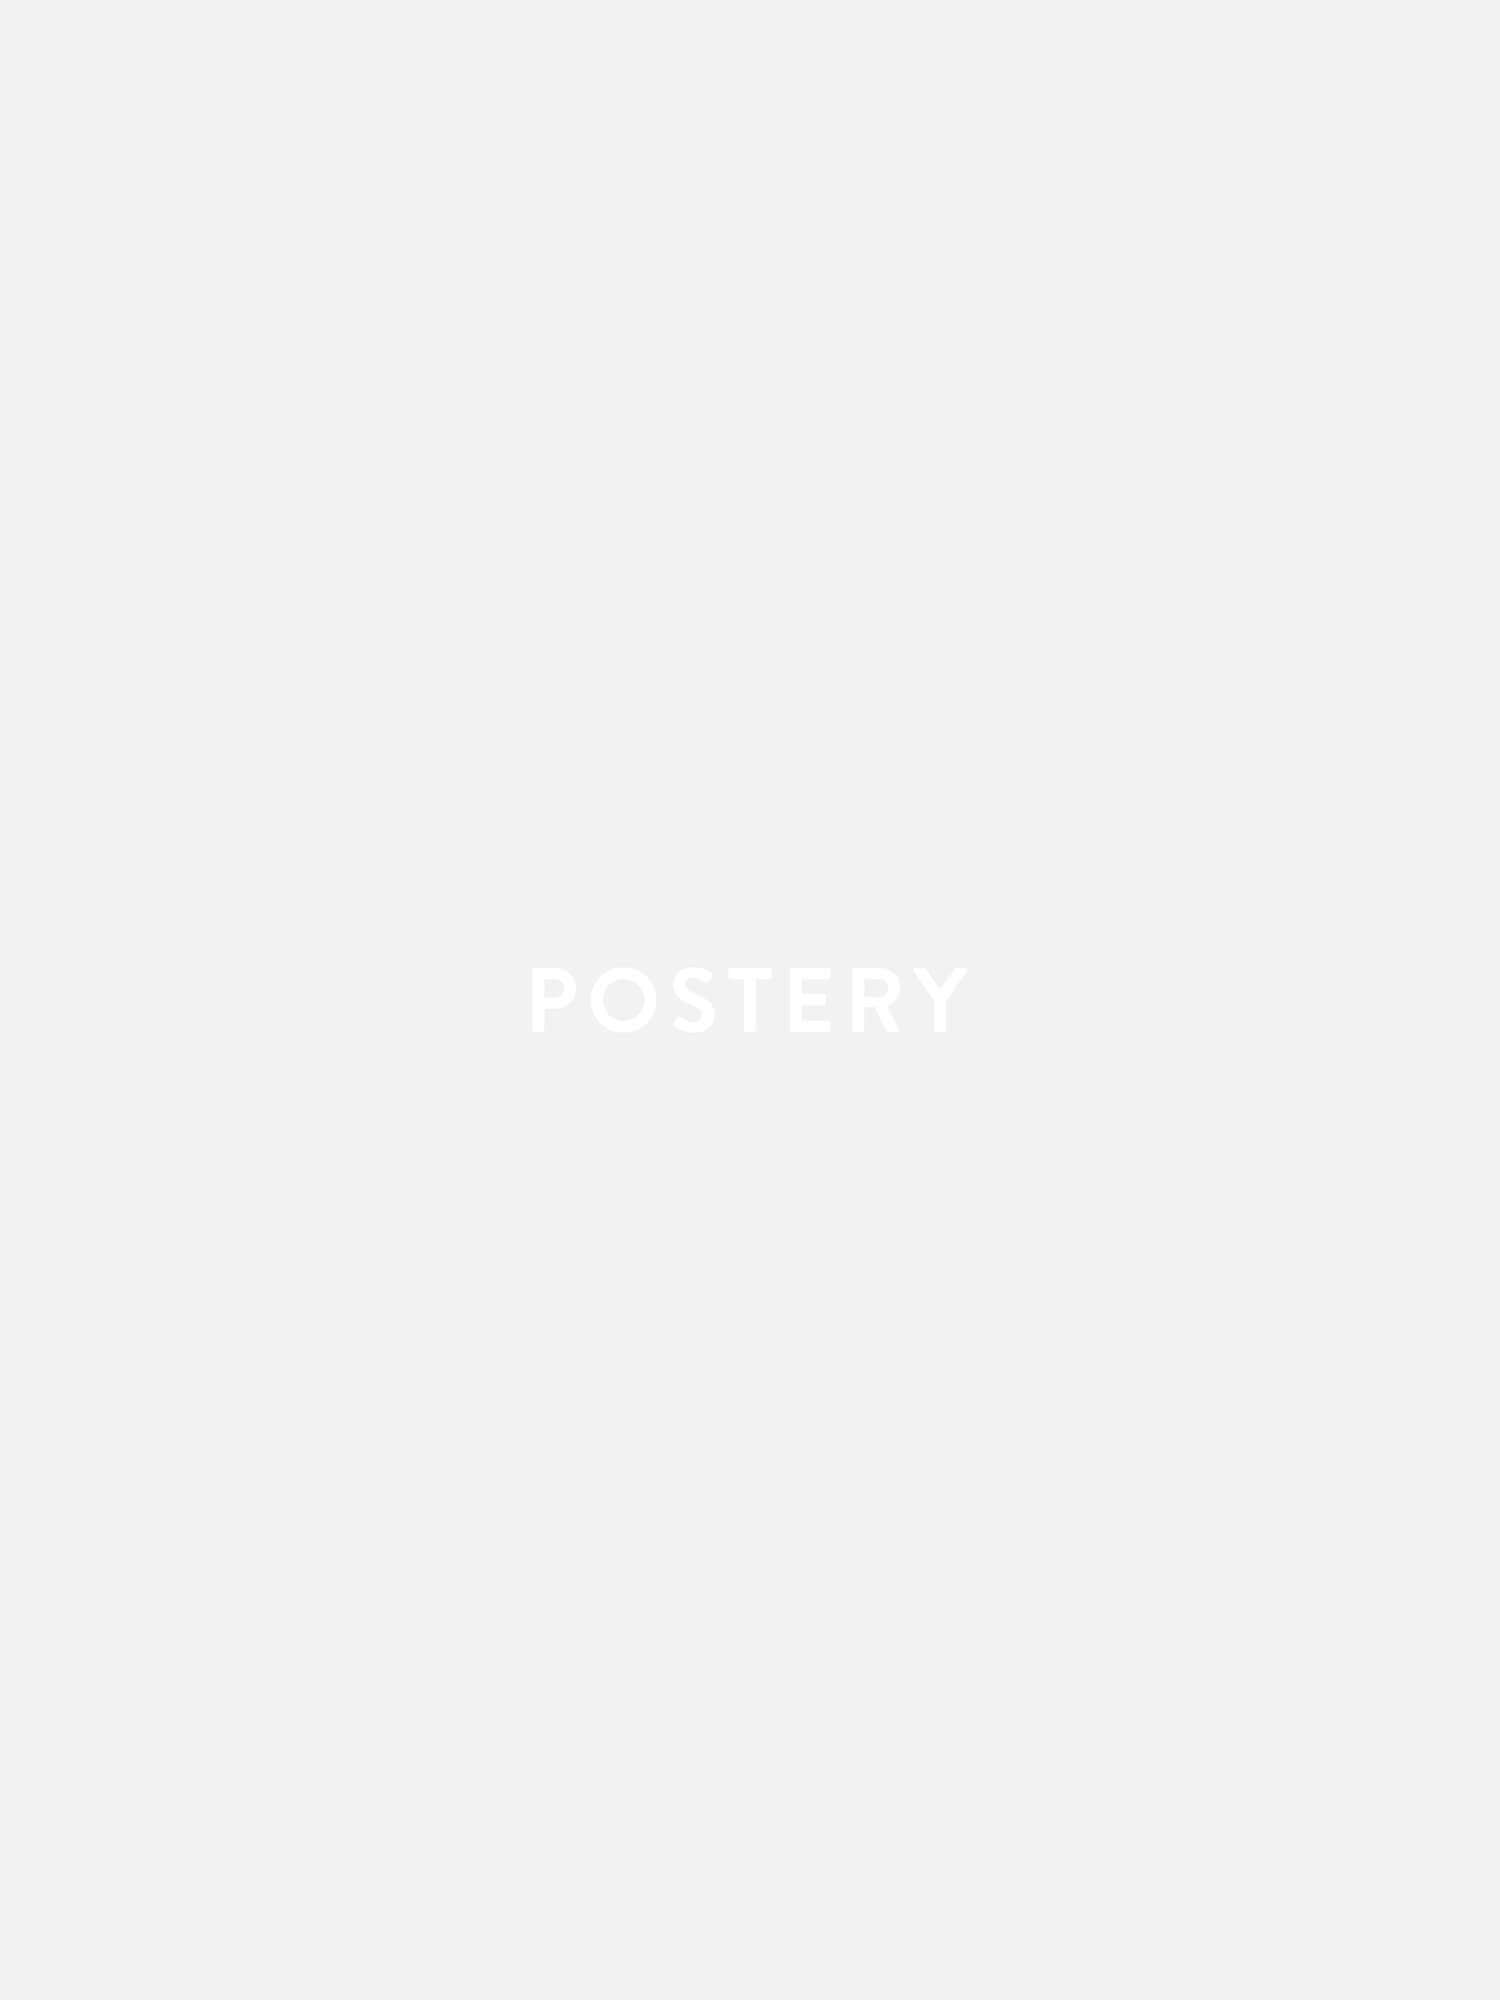 Gallery Wall #6996